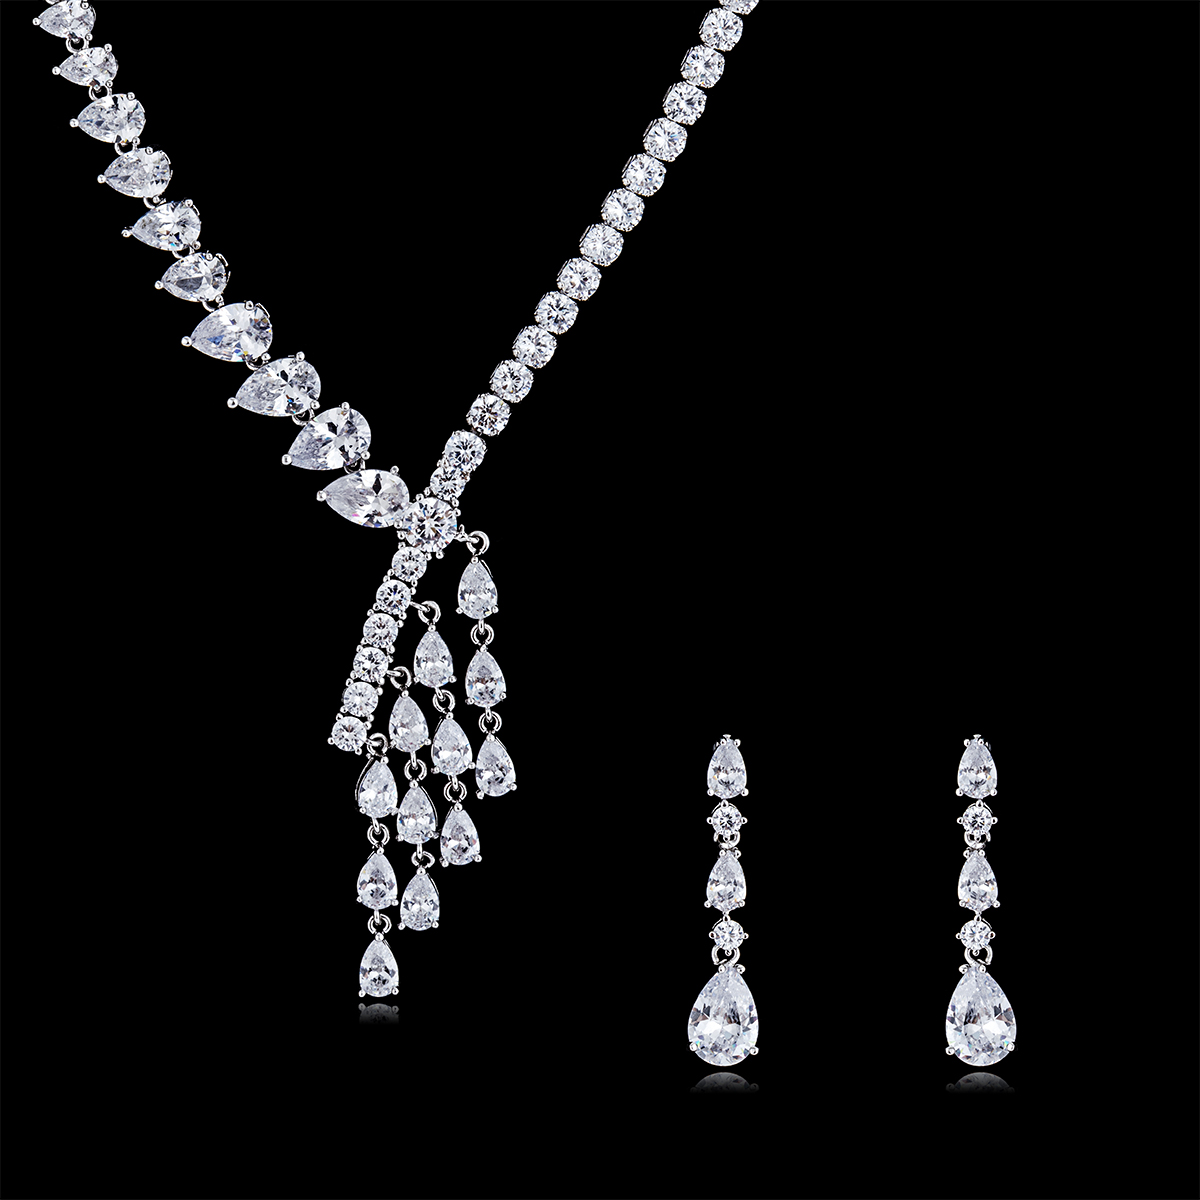 Individuality Crystal CZ Cubic Zircon Bridal Wedding Flower Necklace Earring Set Jewelry Accessories CN10141